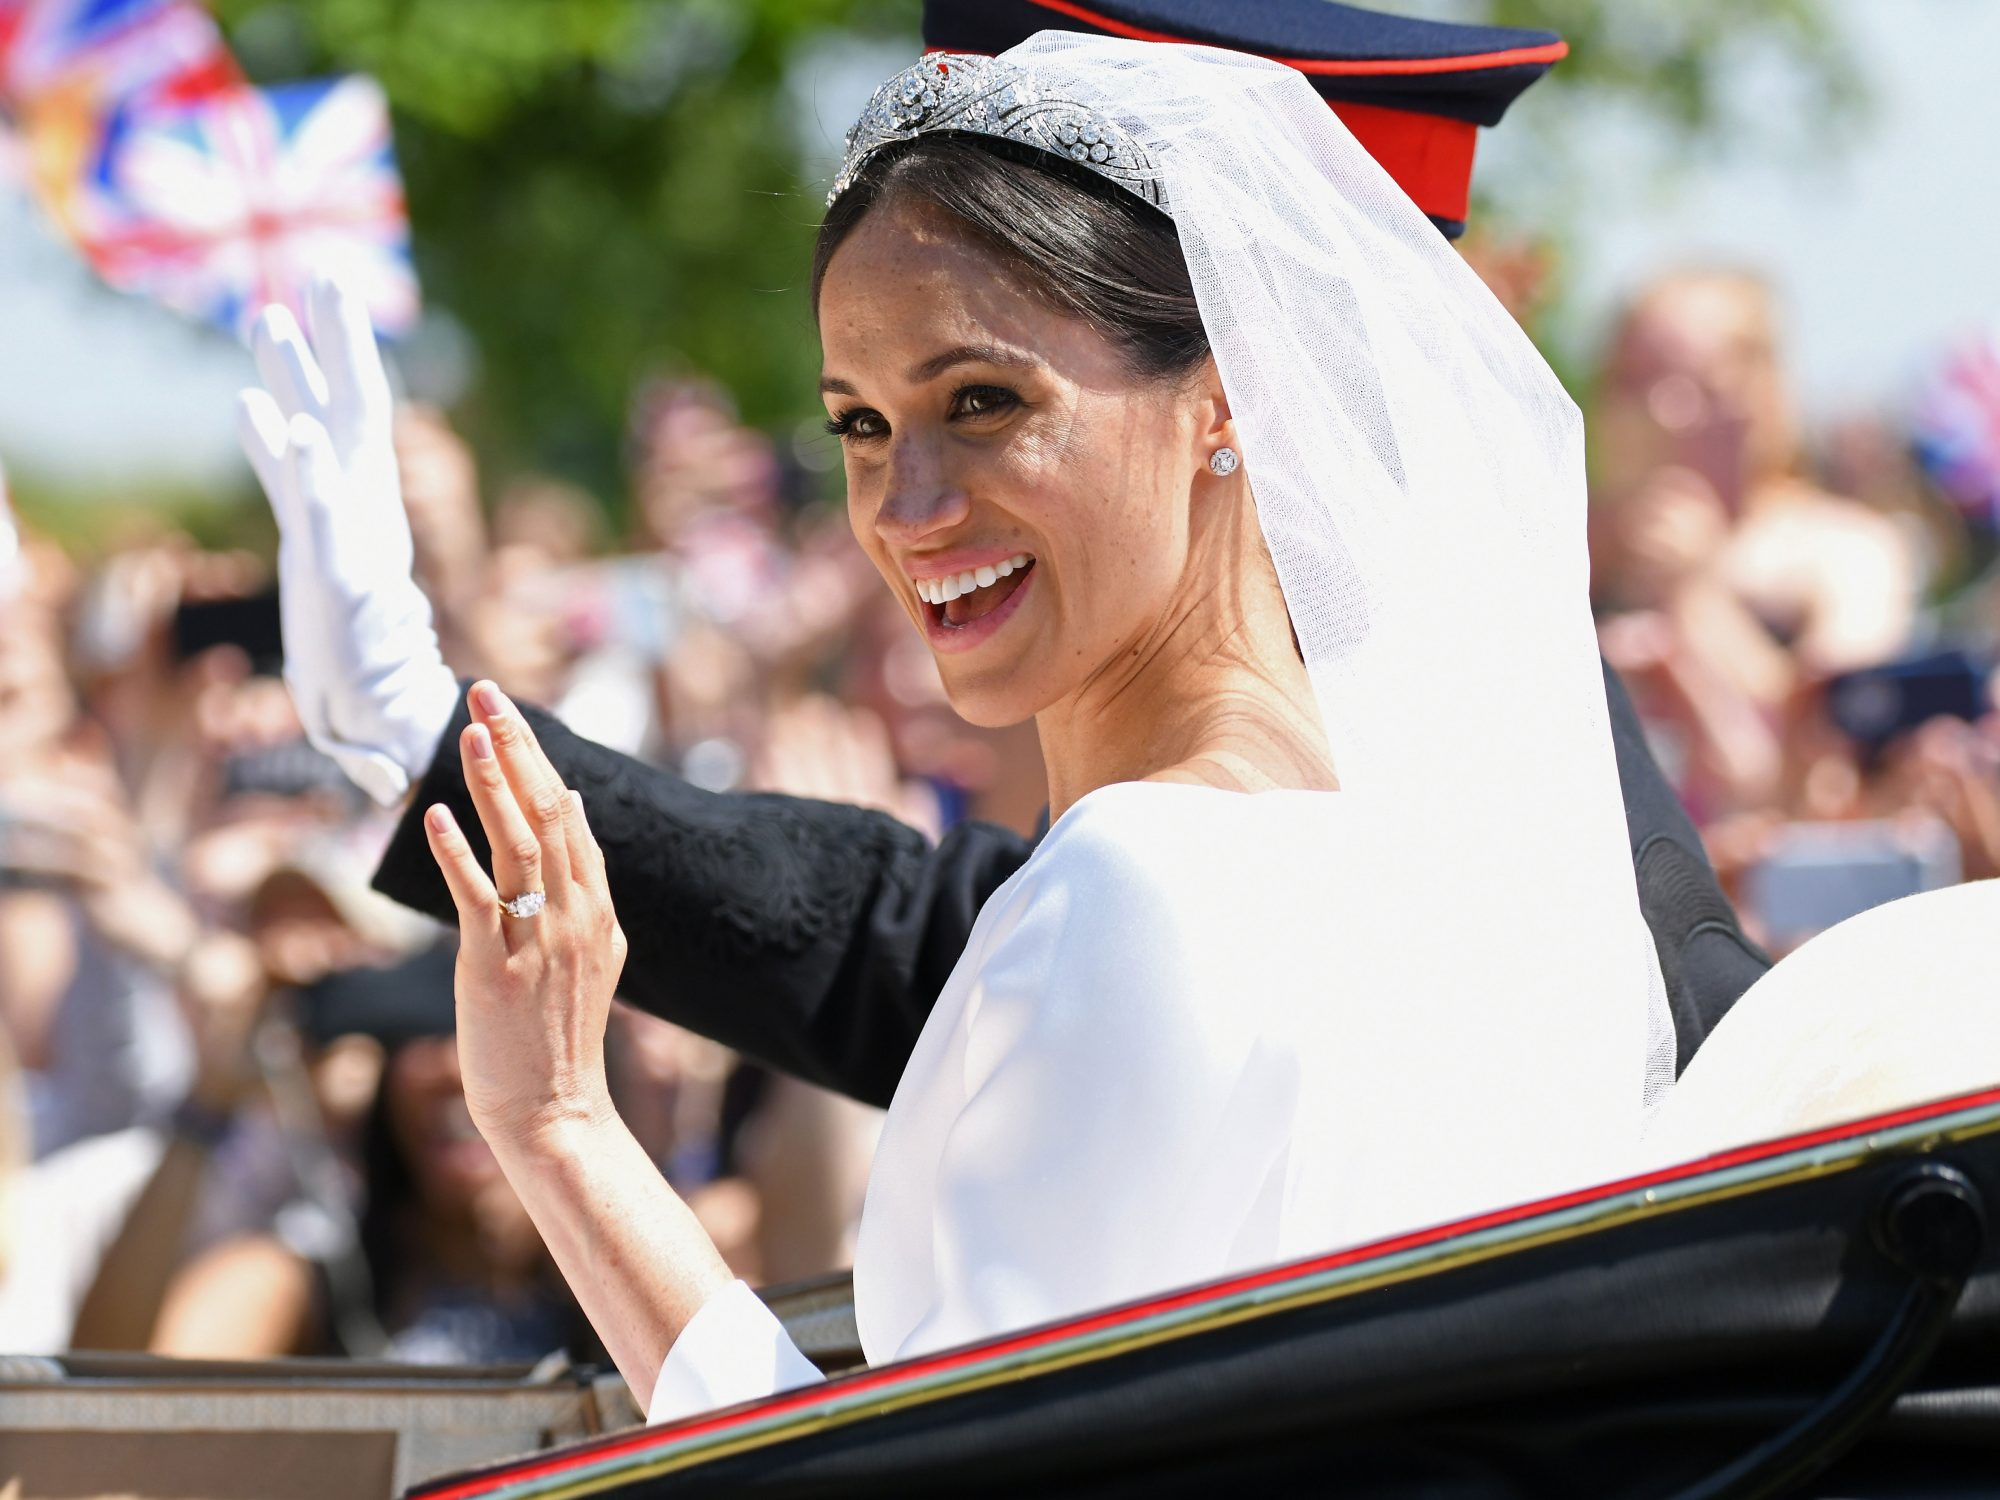 This $40 Replica of Meghan Markle's Wedding Tiara Actually Looks Like the Real Thing